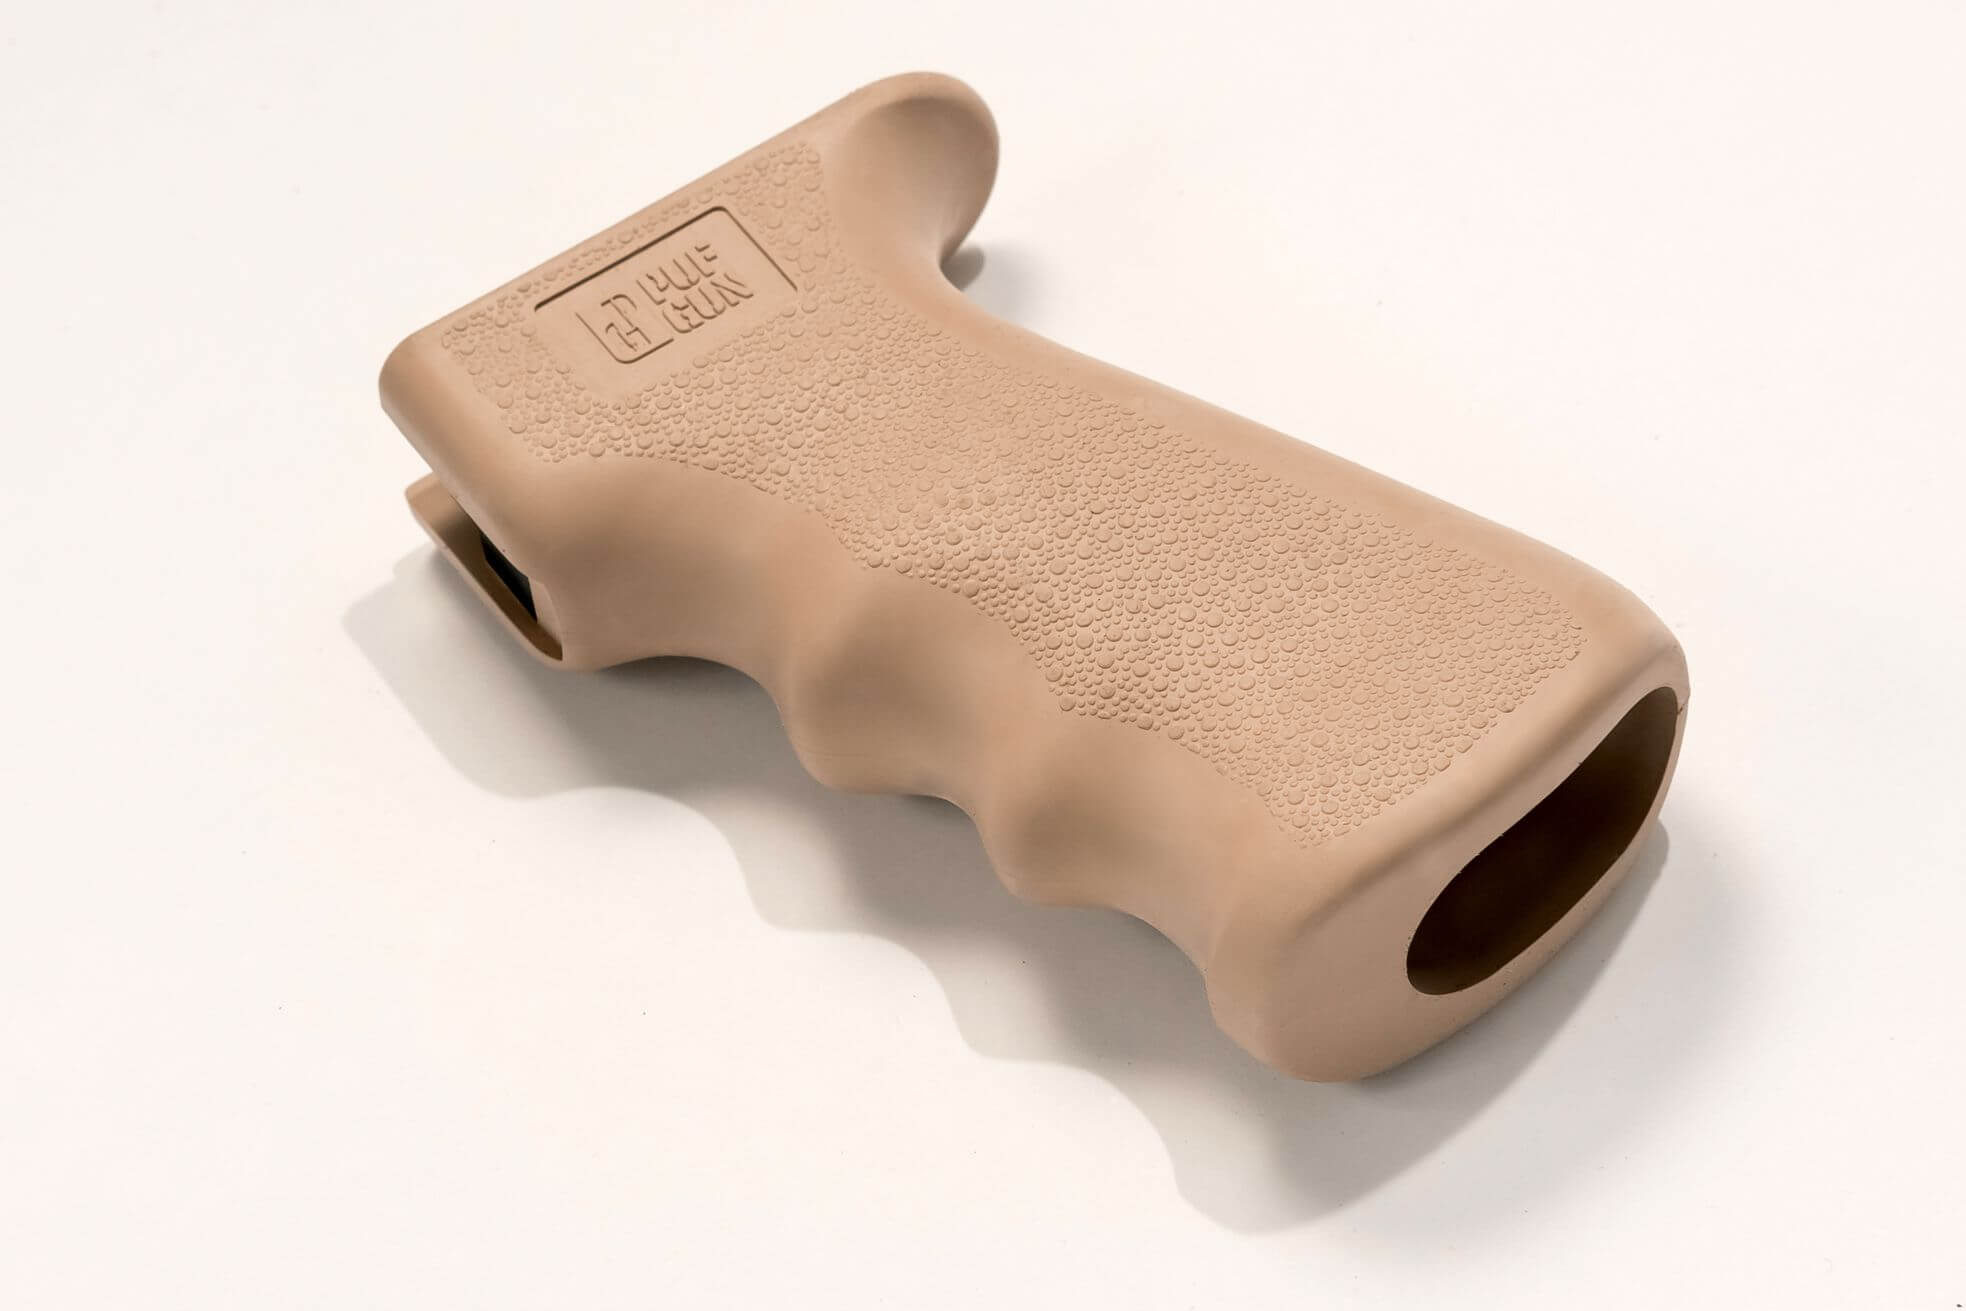 Anatomical hand grip for AK, Grip SG-M2/Tn